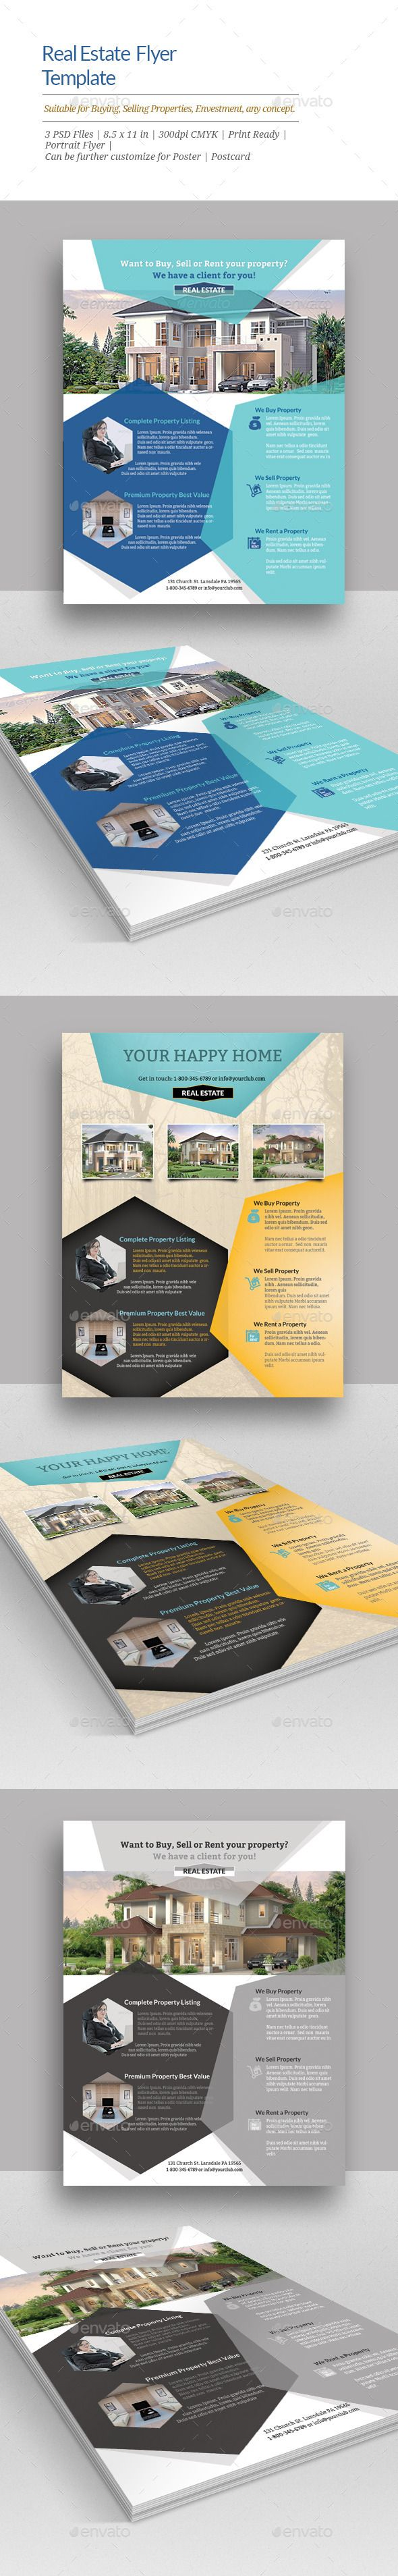 real estate flyer templates a great marketing piece to include in